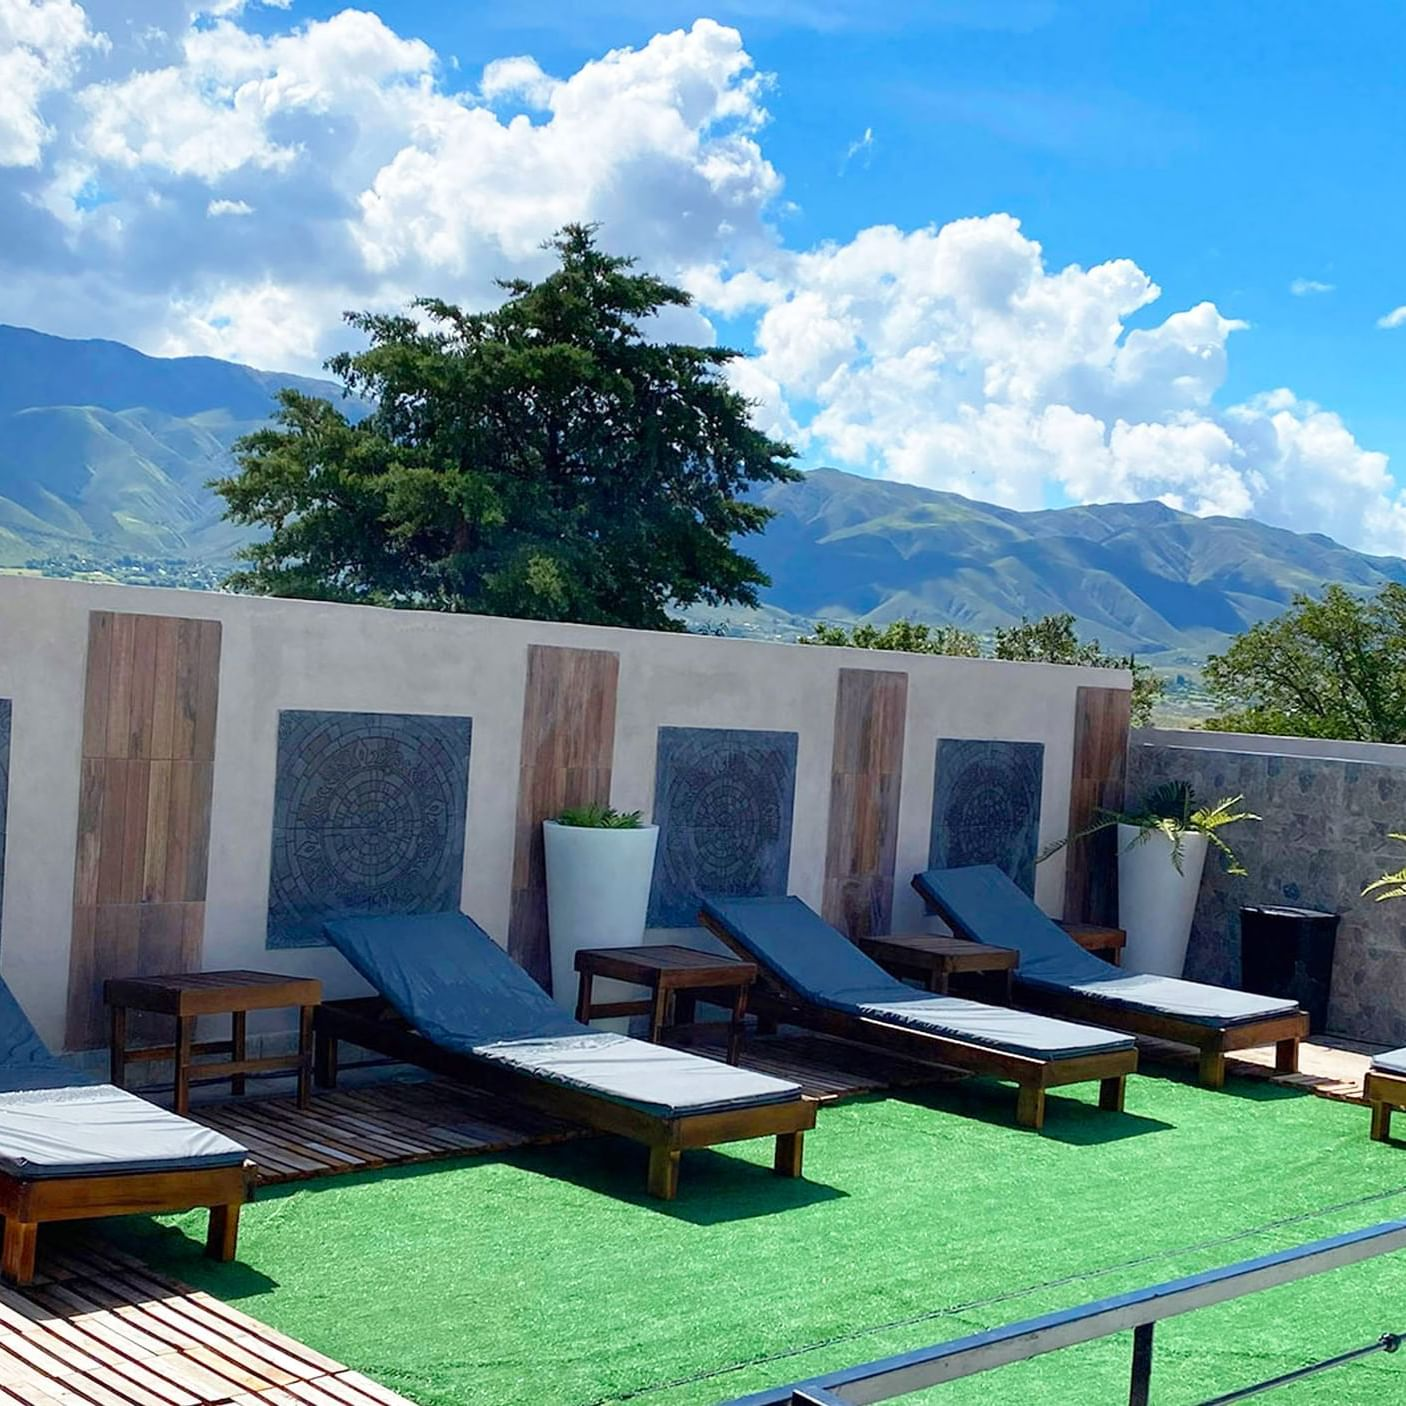 Hotel Colonial Tafi del Valle by DOT Tradition